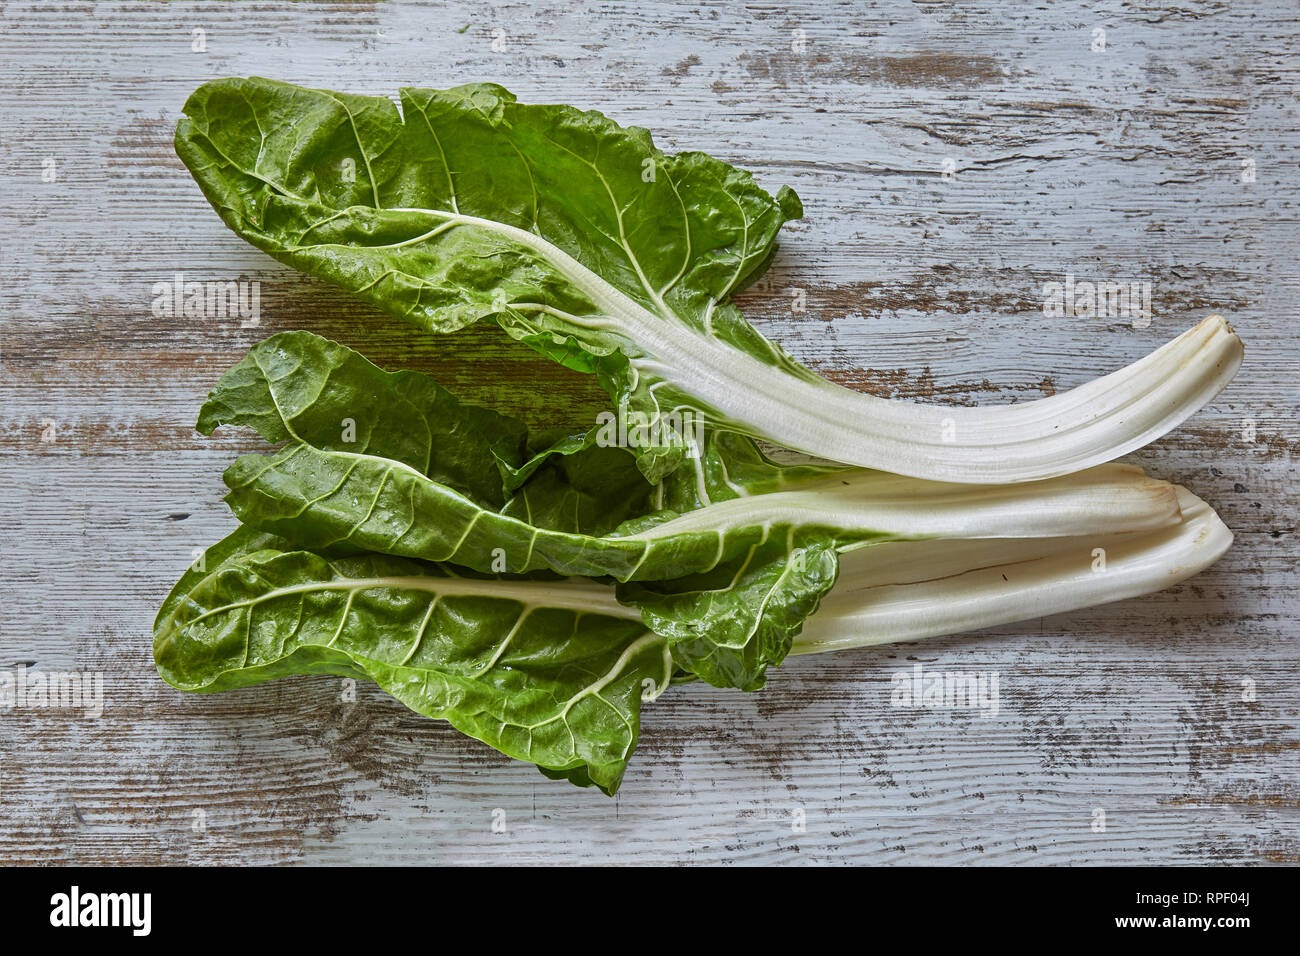 Healthy vegetable chard on a rustic wooden board. Plant, cuisine - Stock Image